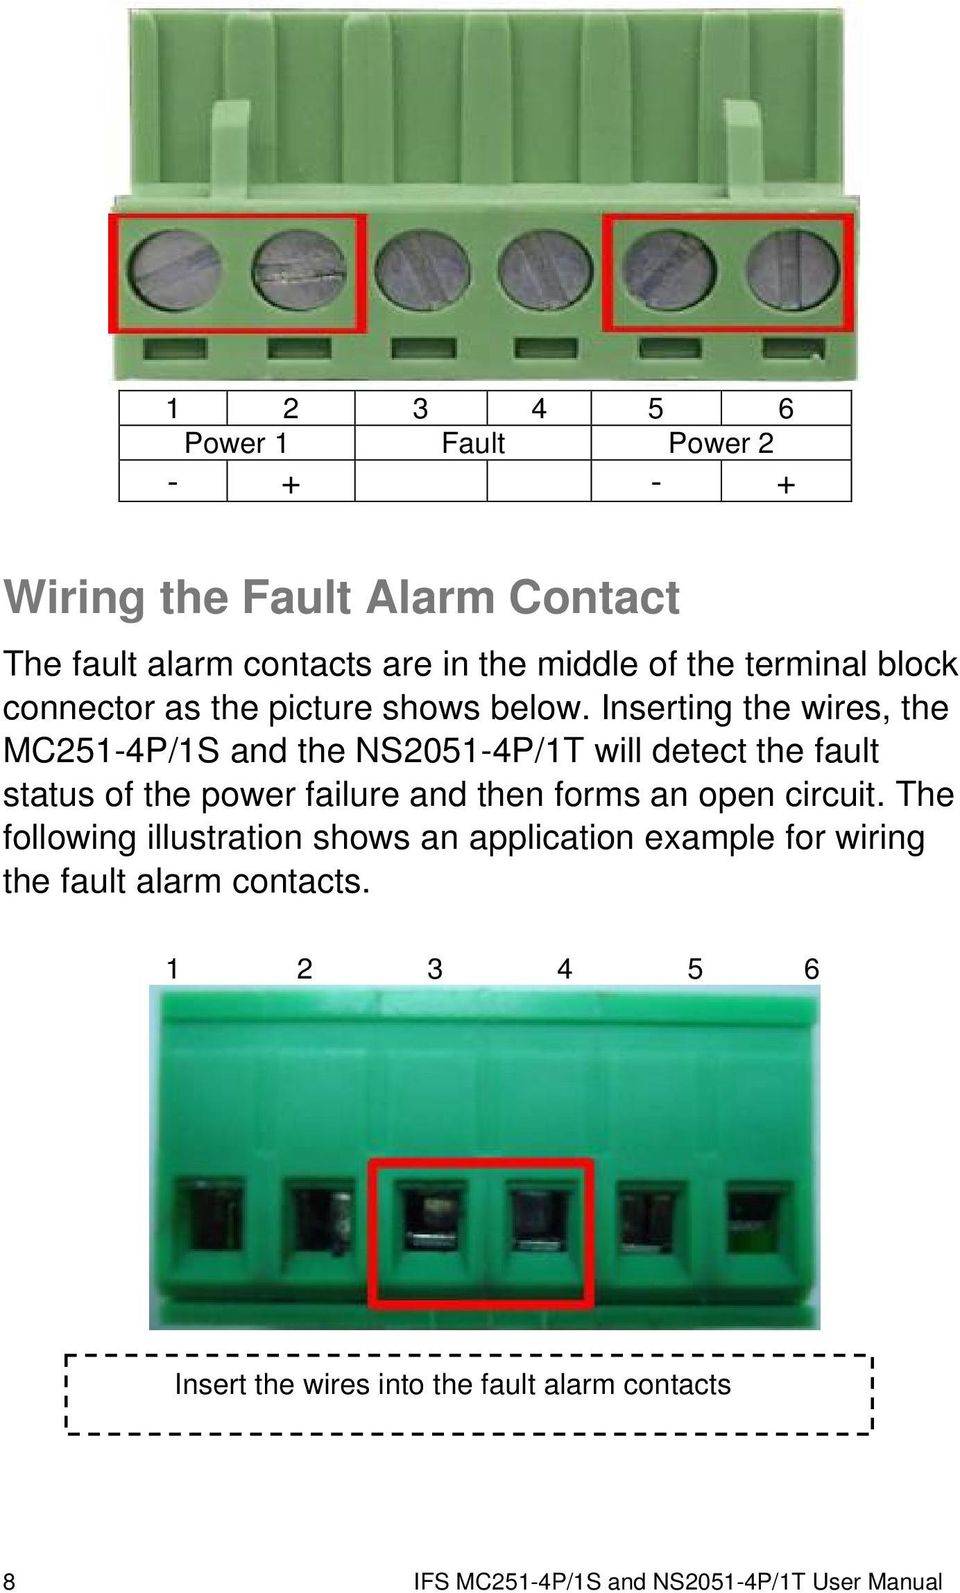 Inserting the wires, the MC251-4P/1S and the NS2051-4P/1T will detect the fault status of the power failure and then forms an